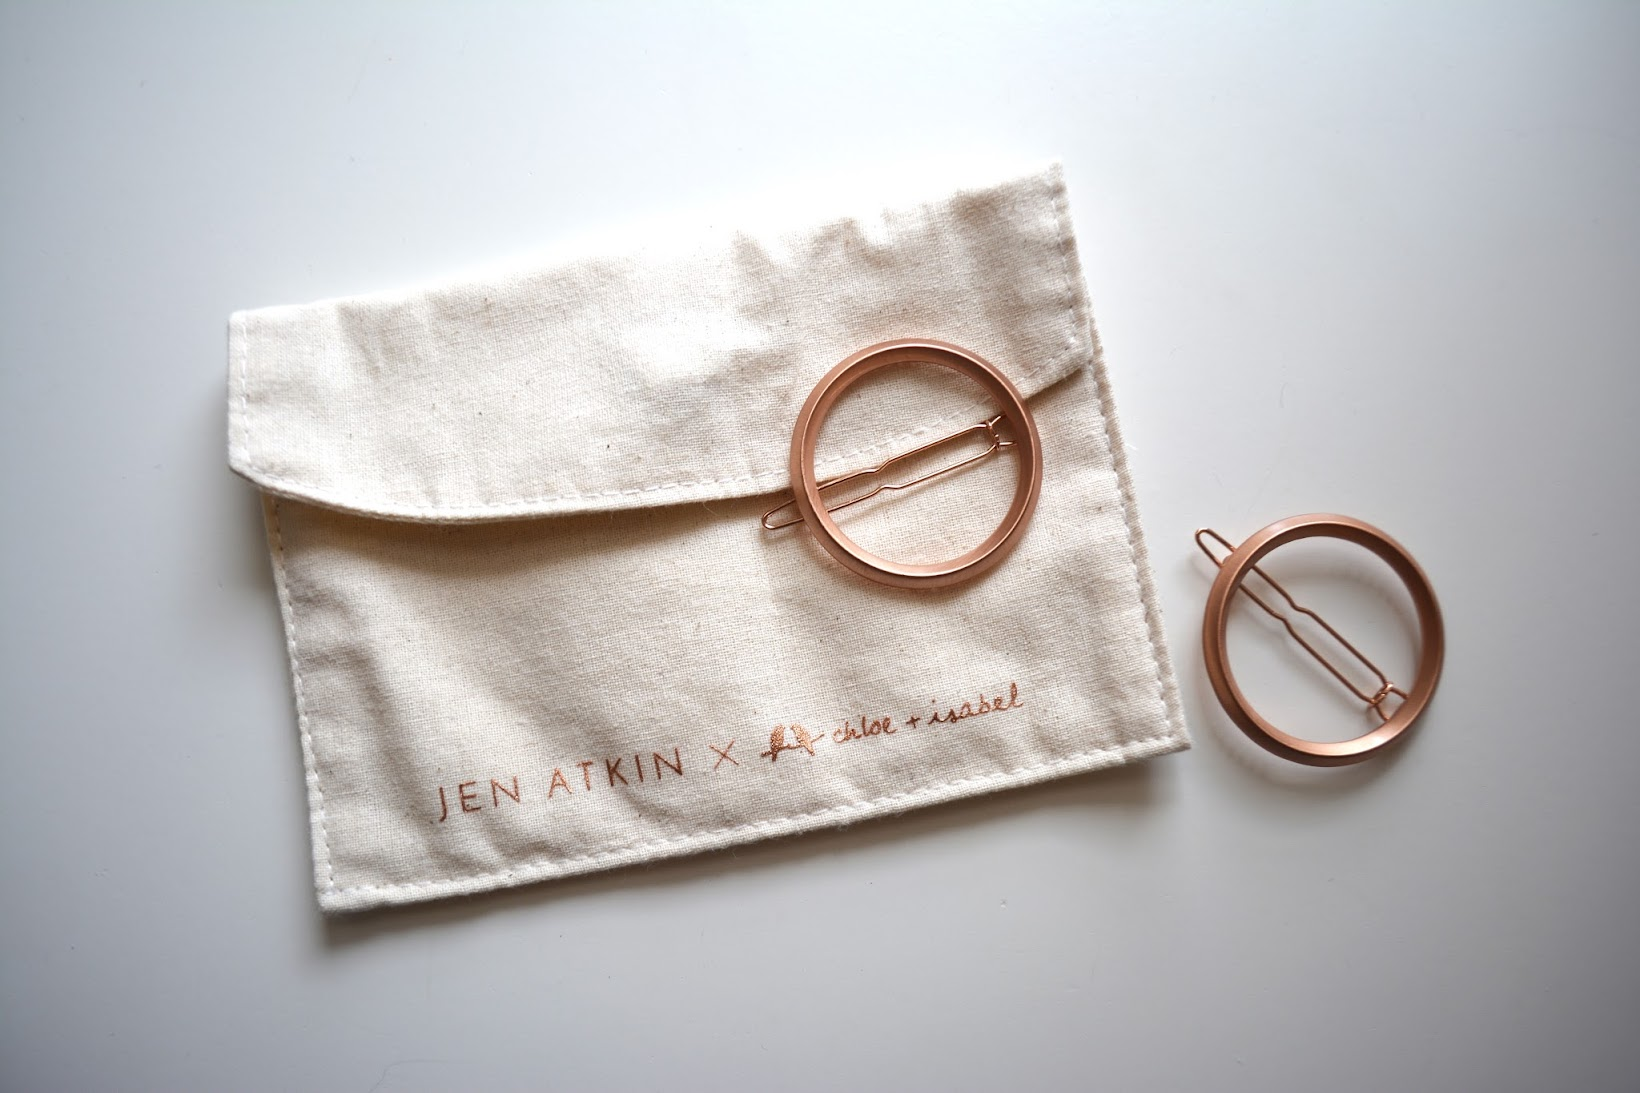 Small Circle Clip Set from Jen Atkin x Chloe + Isabel, rose gold hair clips, rose gold circle hair clips,